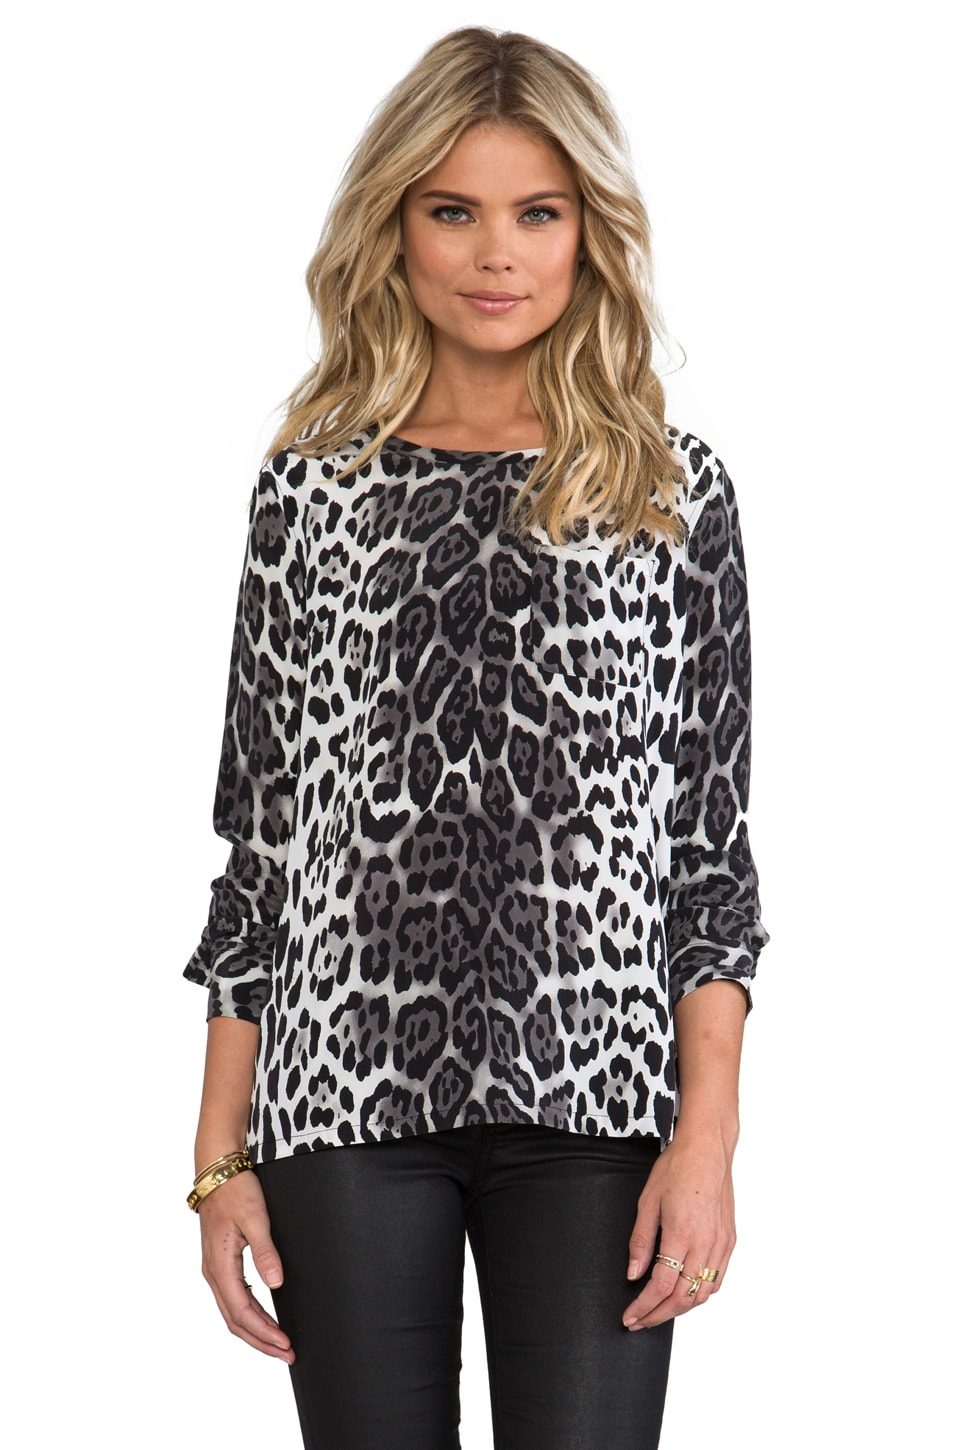 Equipment Liam Magic Leopard Pocket Blouse in Black